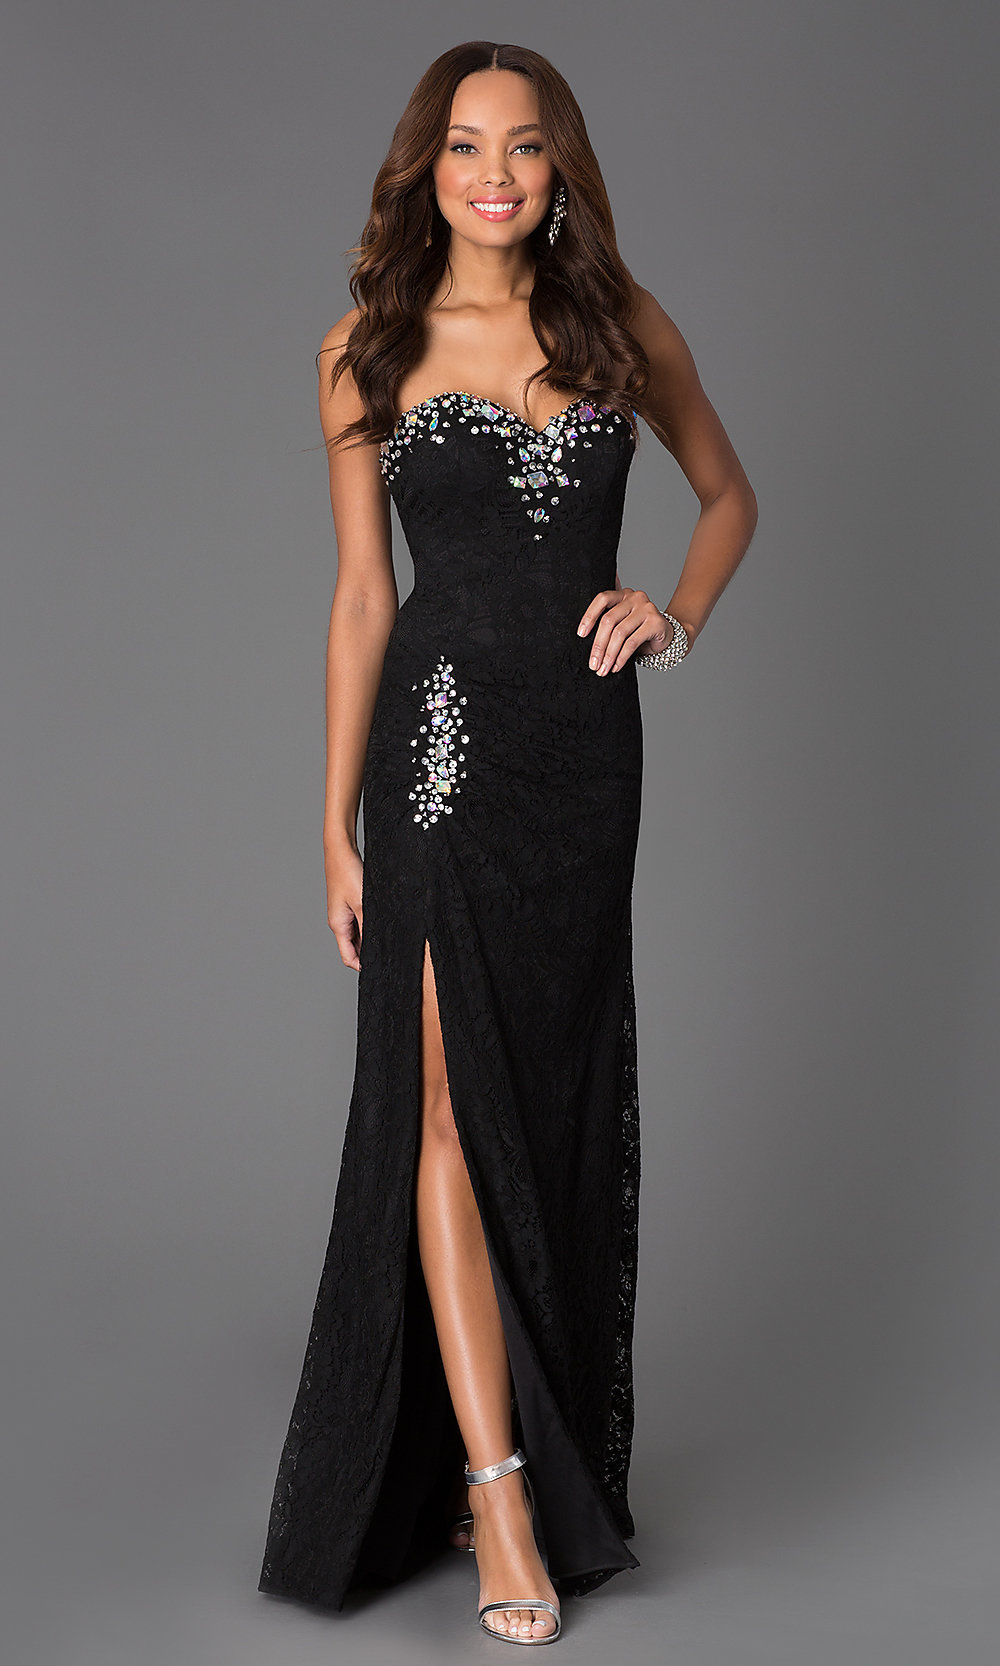 Luxury / Gorgeous Black Gold Prom Dresses 2017 Ball Gown ...  |Formal Ball Dresses With Lace